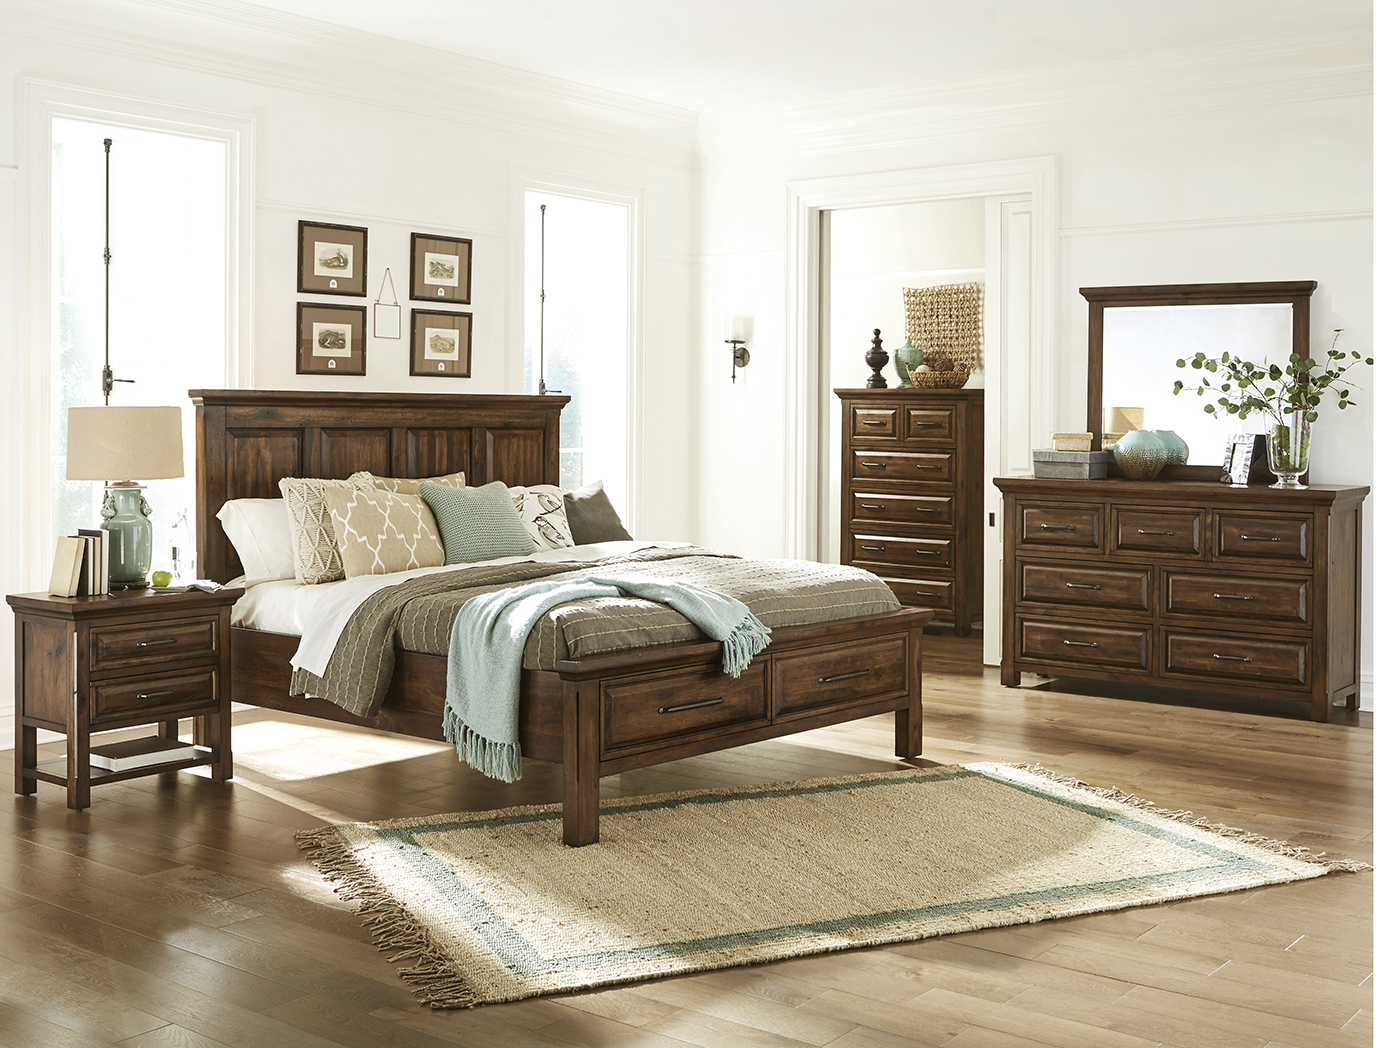 Charmant Hillcrest King Panel Storage Bed